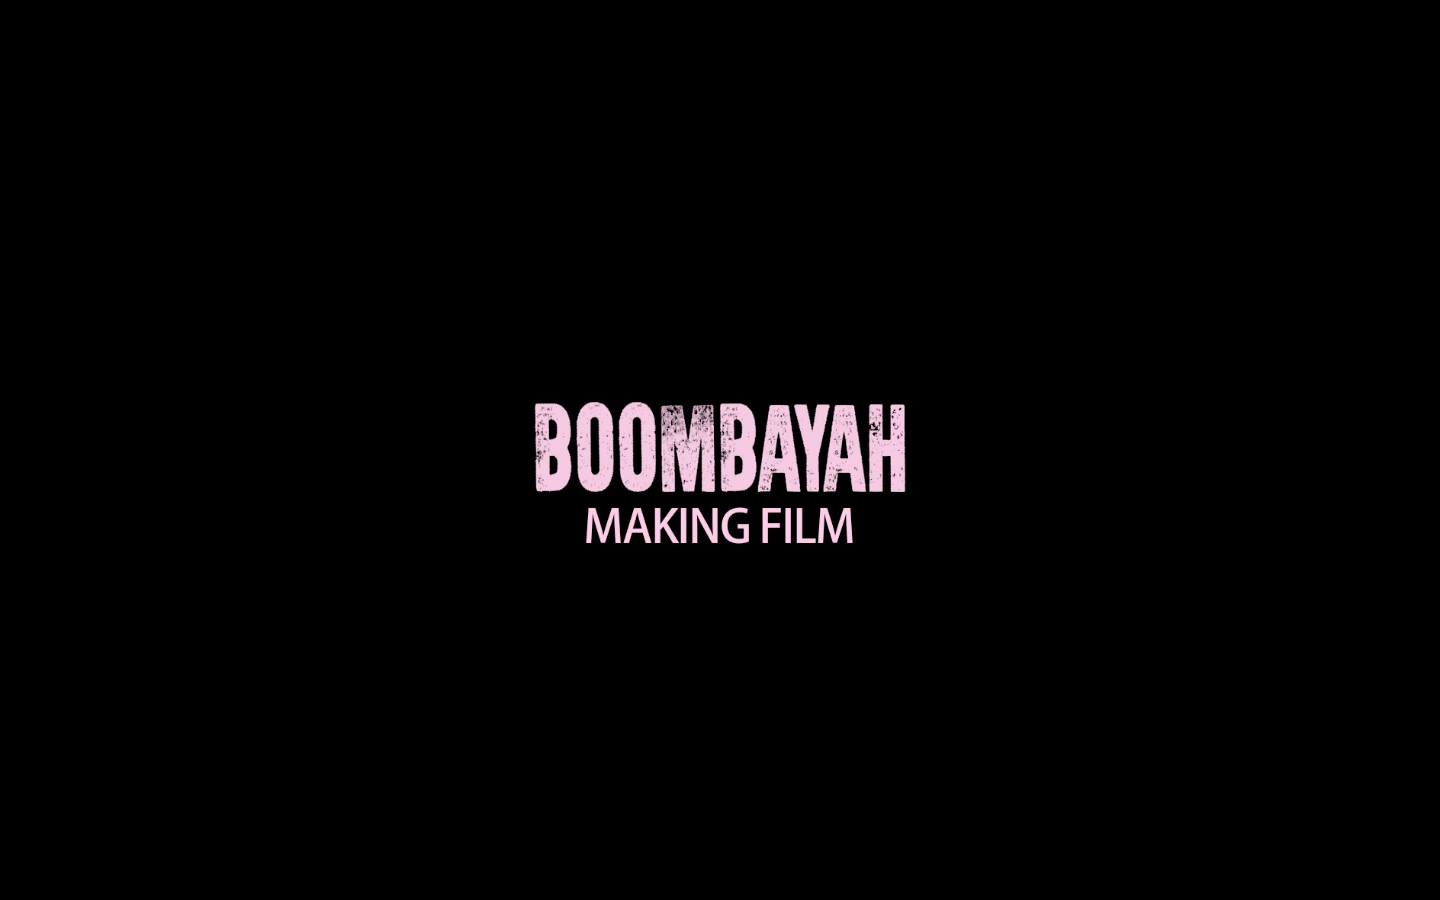 BLACKPINK - '붐바야'(BOOMBAYAH) M/V BEHIND THE SCENES​